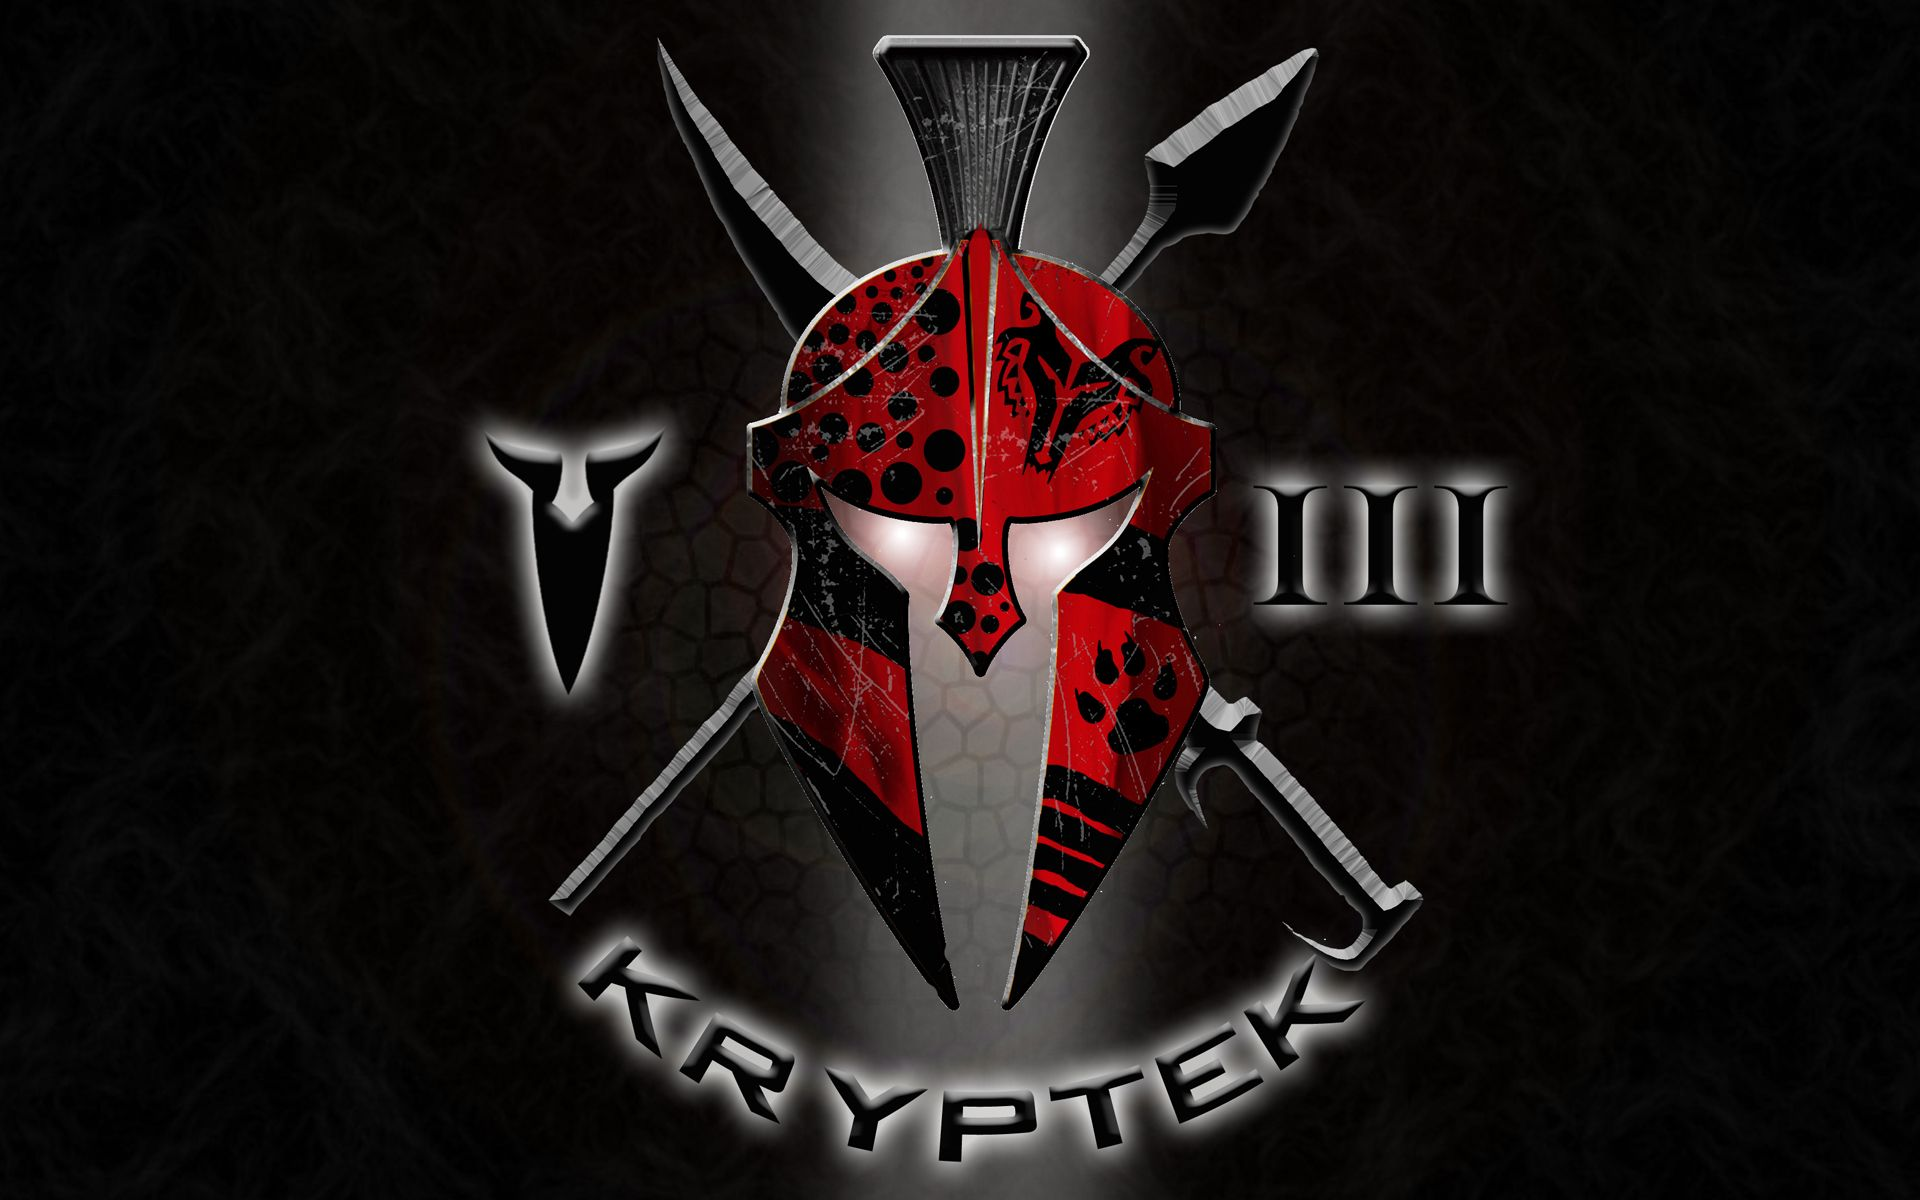 Kryptek Logo Wallpaper: Kryptek Wallpaper Images And Graphics